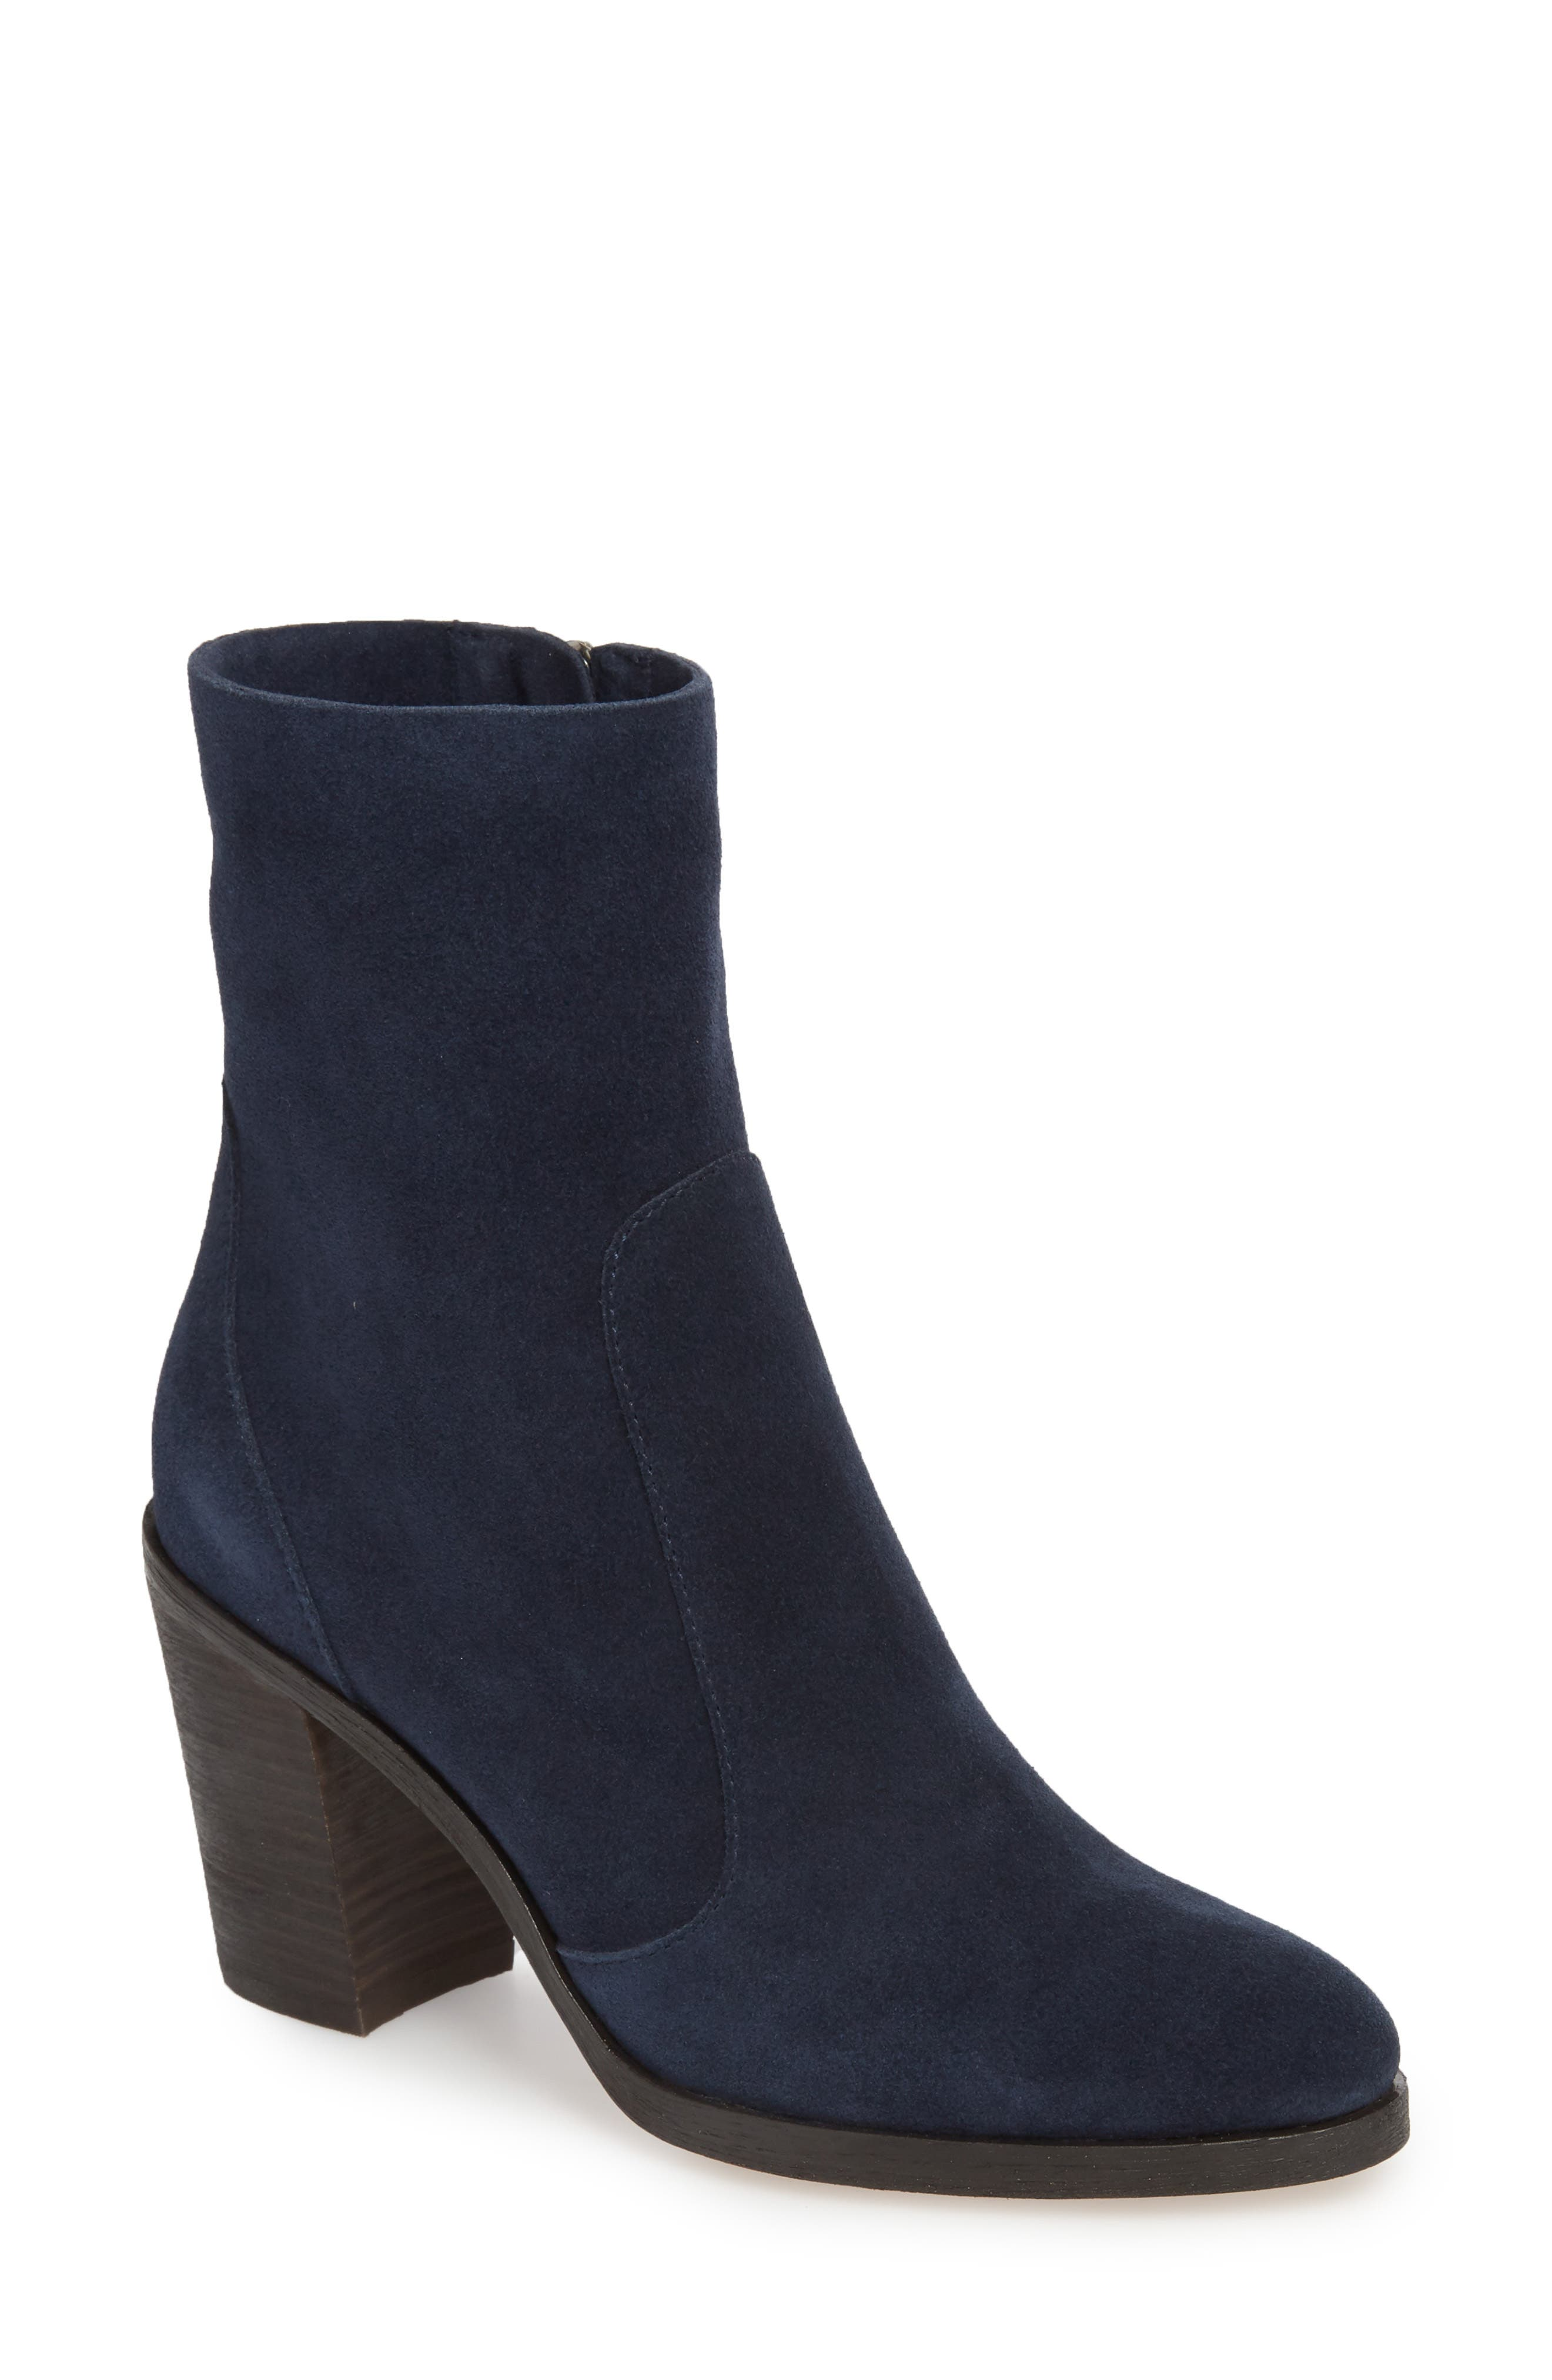 Roselyn II Almond Toe Bootie,                         Main,                         color, Navy Suede